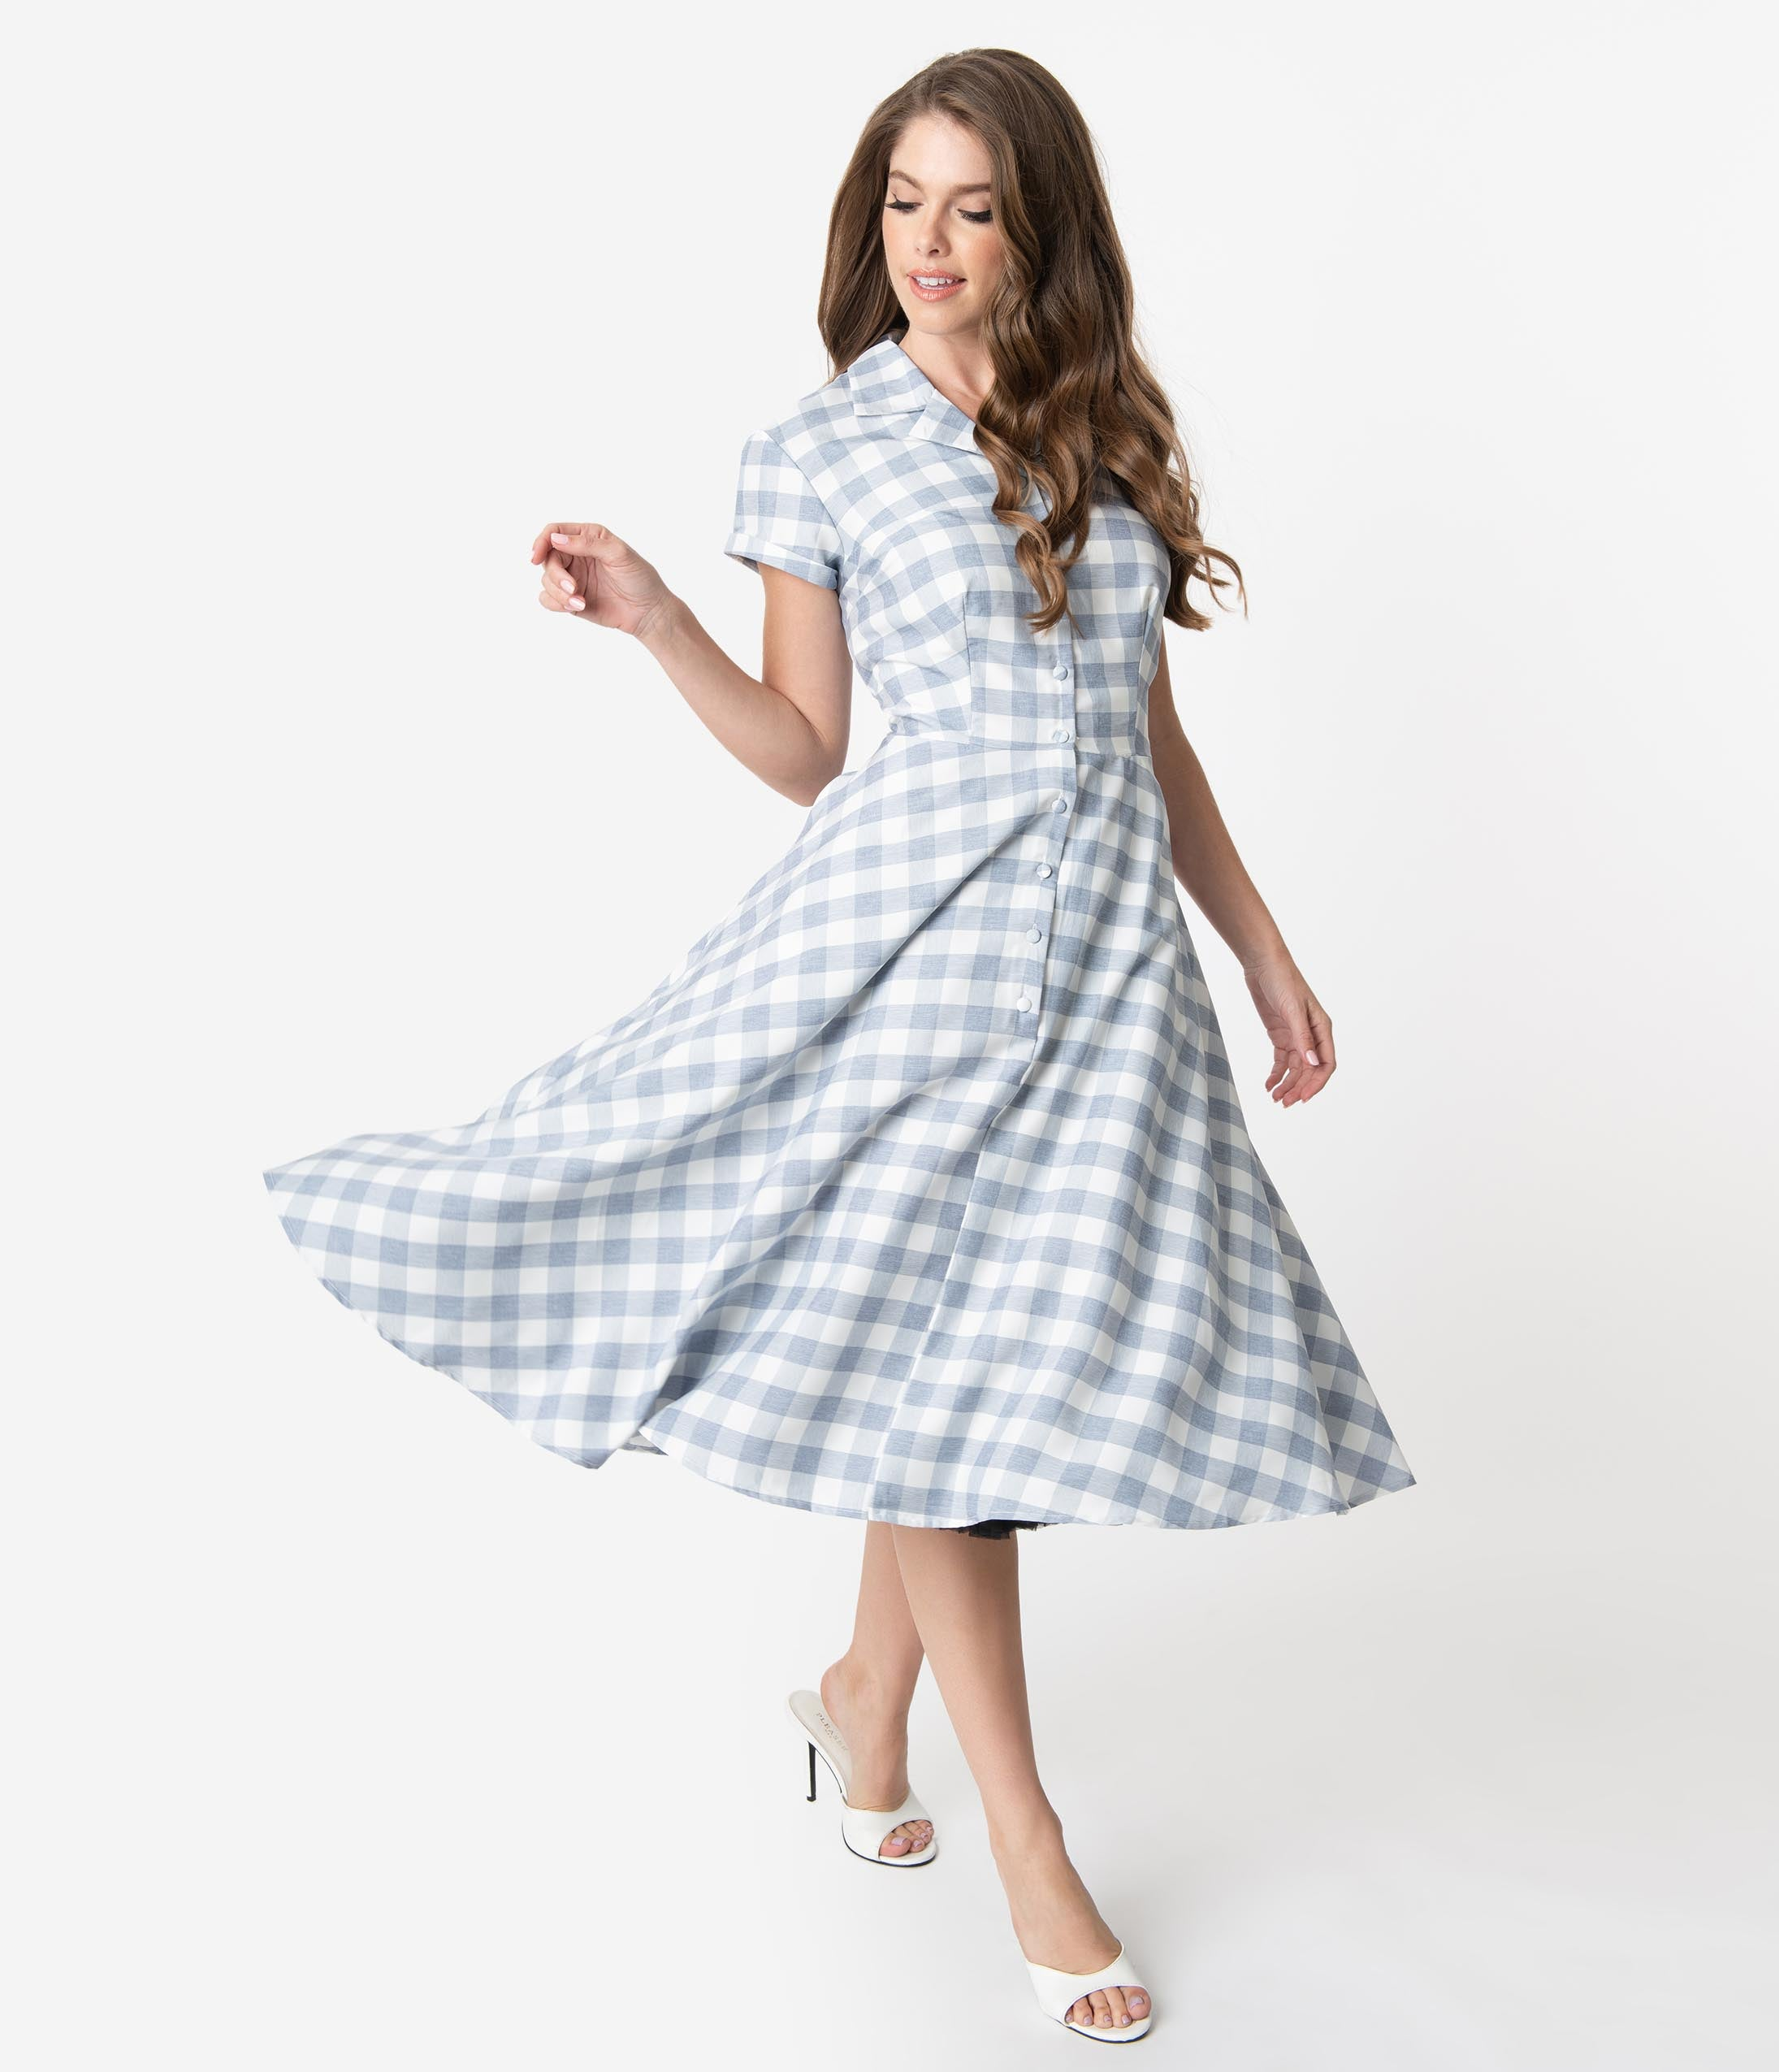 1950s Dresses, 50s Dresses | 1950s Style Dresses Unique Vintage 1950S Style Light Blue  White Gingham Alexis Swing Dress $98.00 AT vintagedancer.com